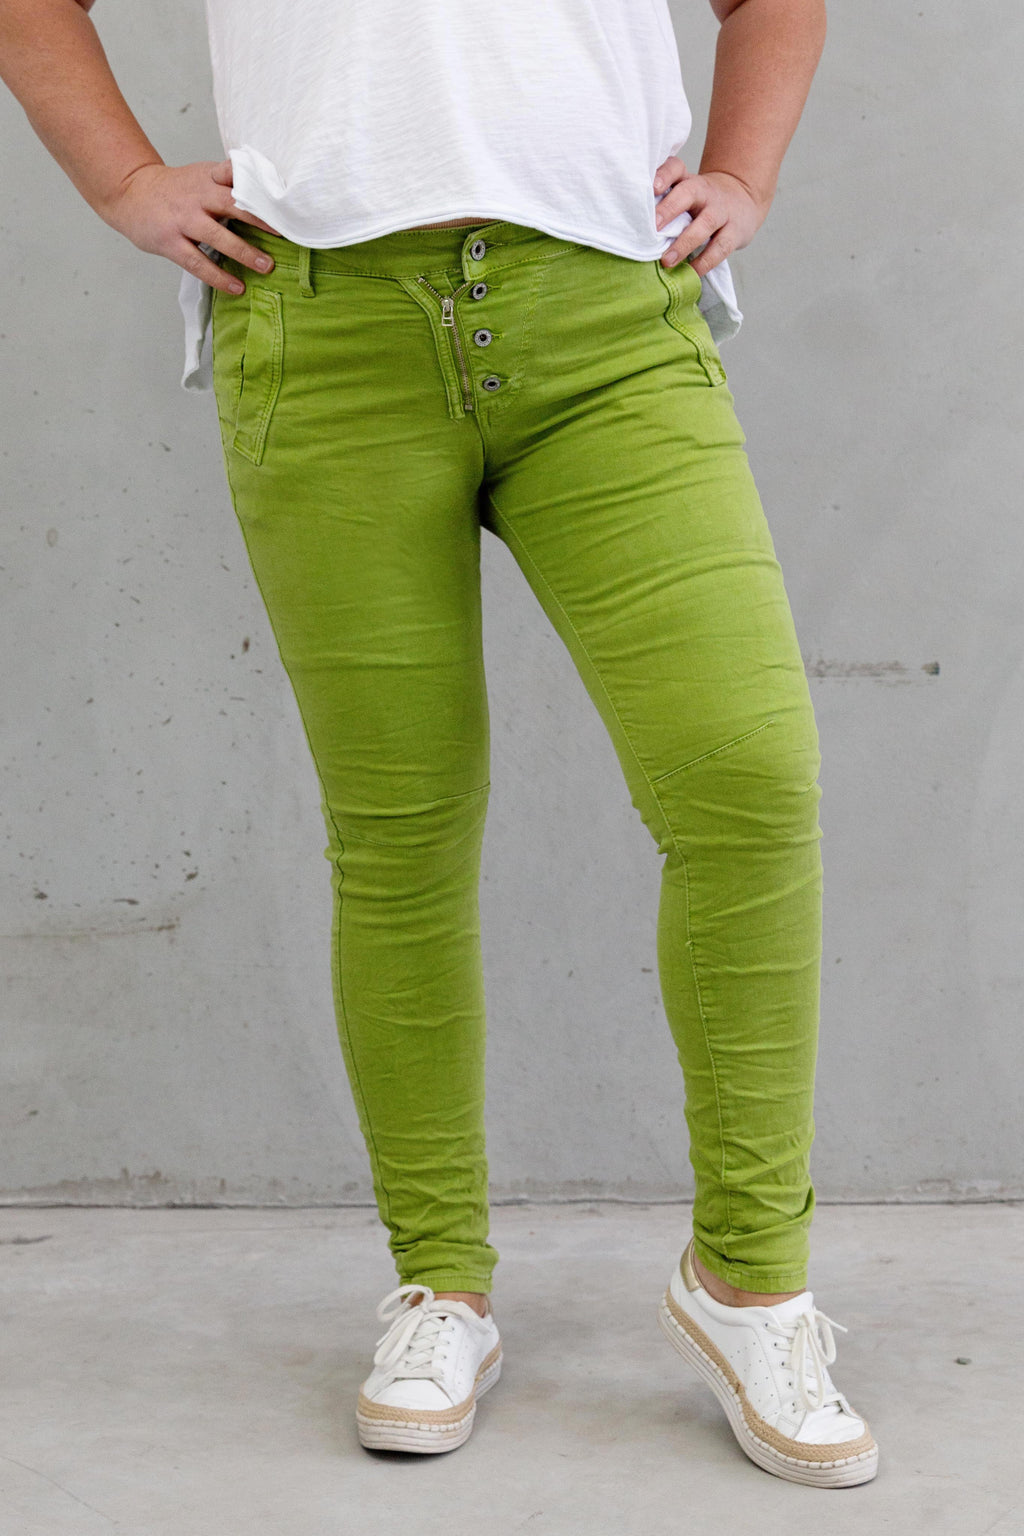 Italian Star Jeans Citrus Green